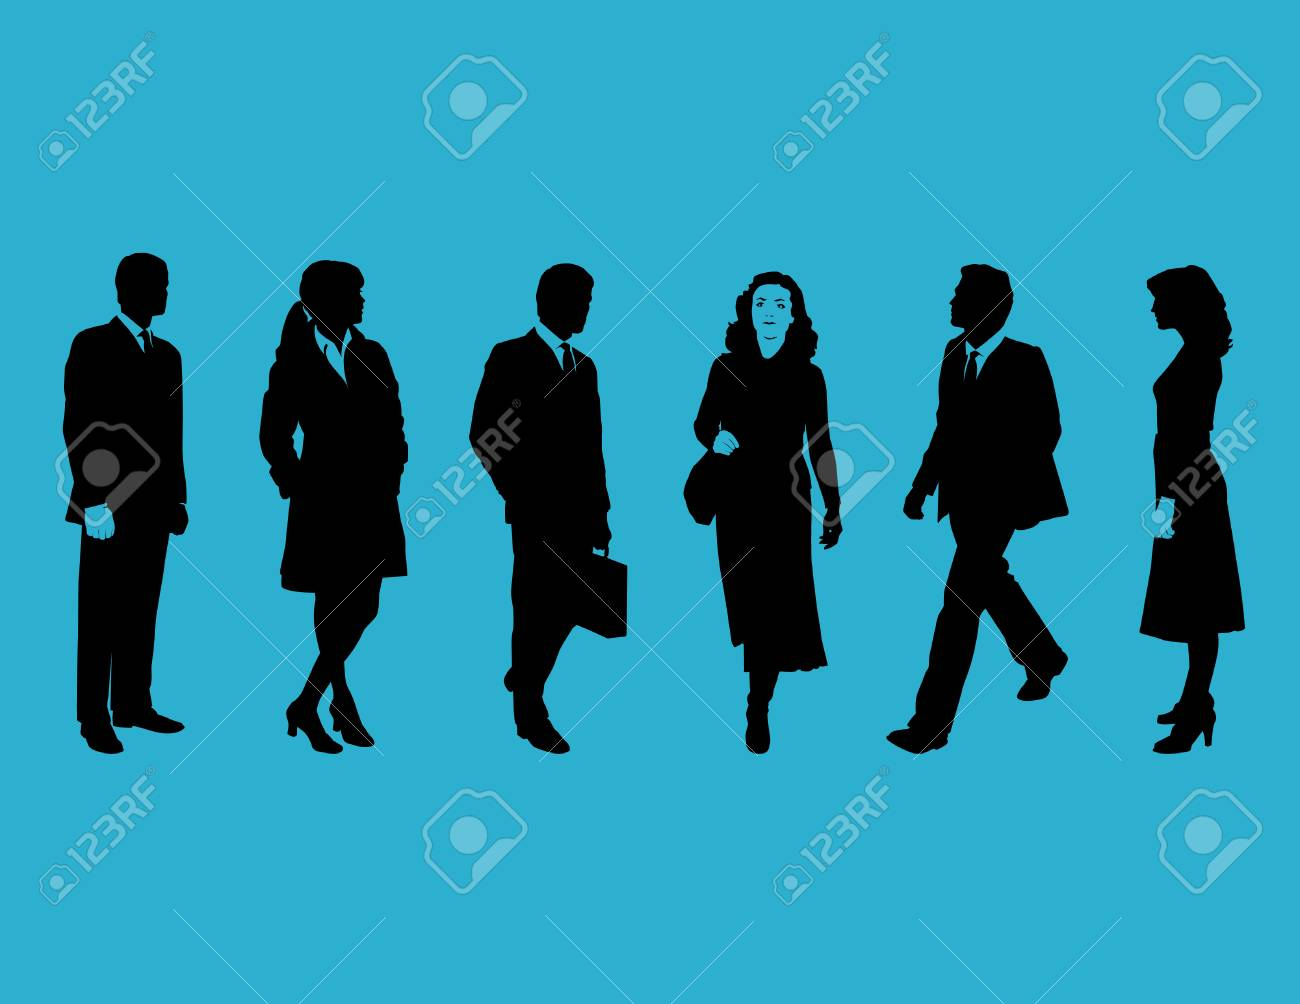 Business people silhouettes Stock Vector - 4198030